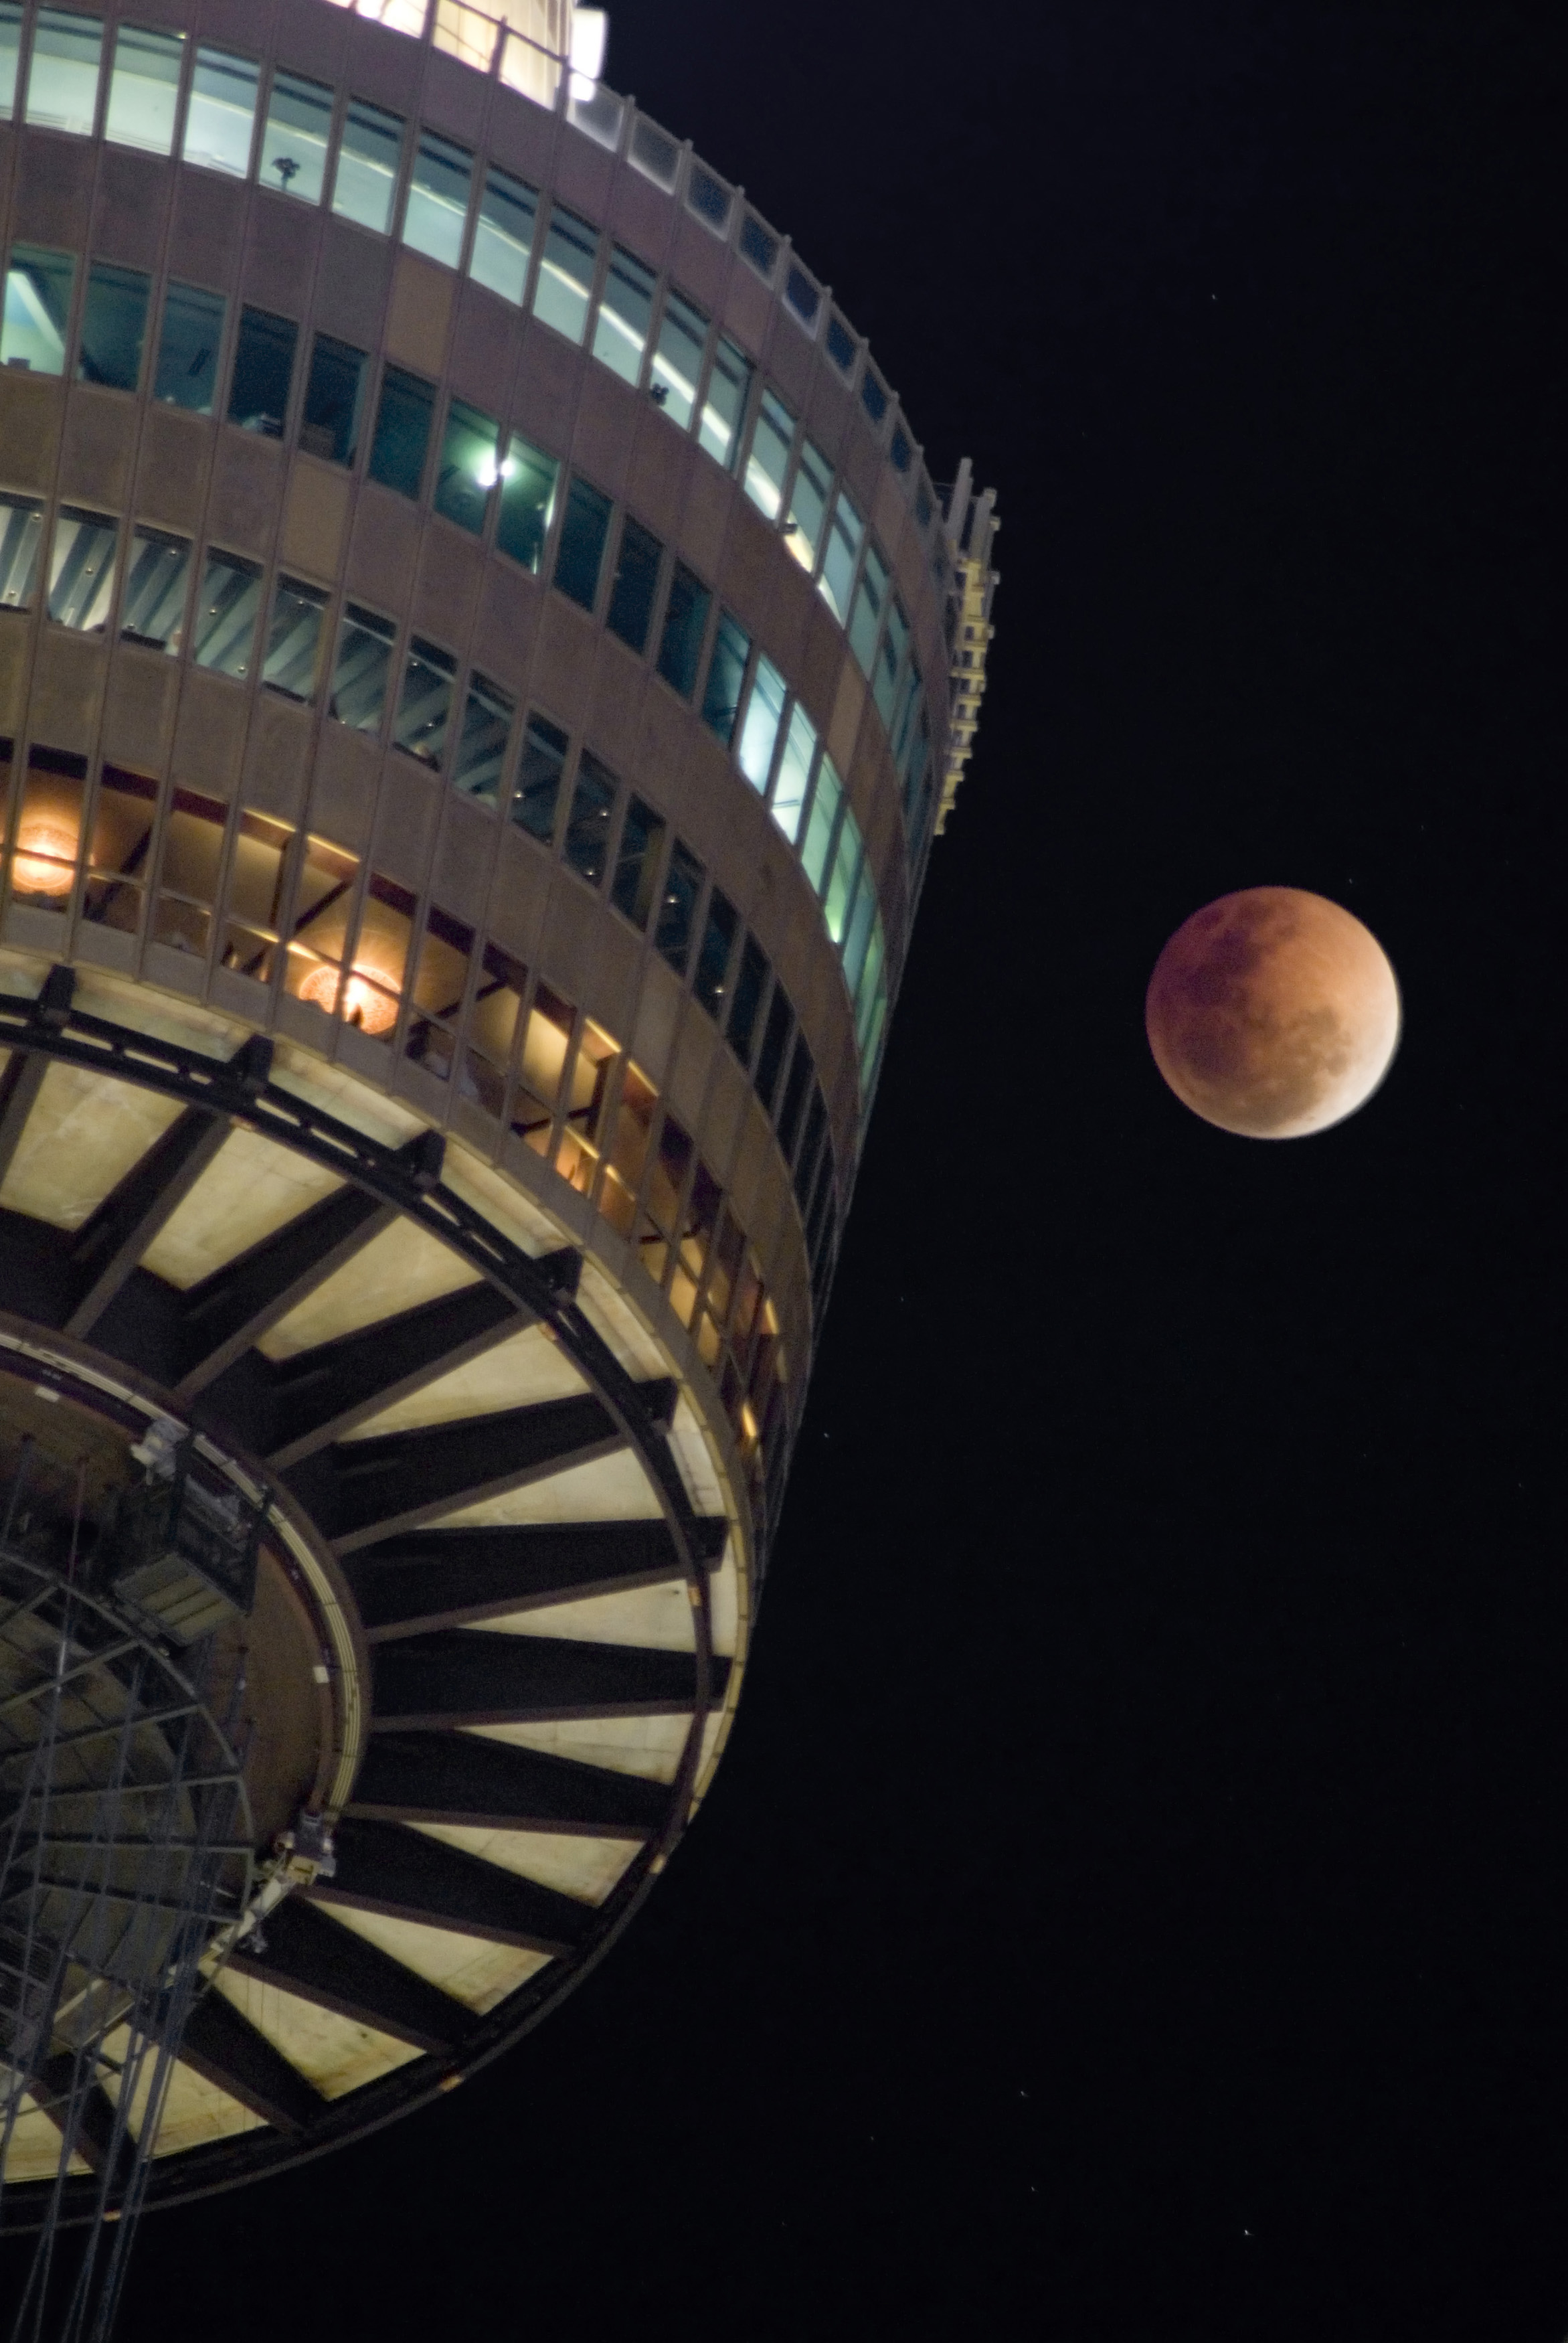 coppery coloured moon during a lunar eclipse